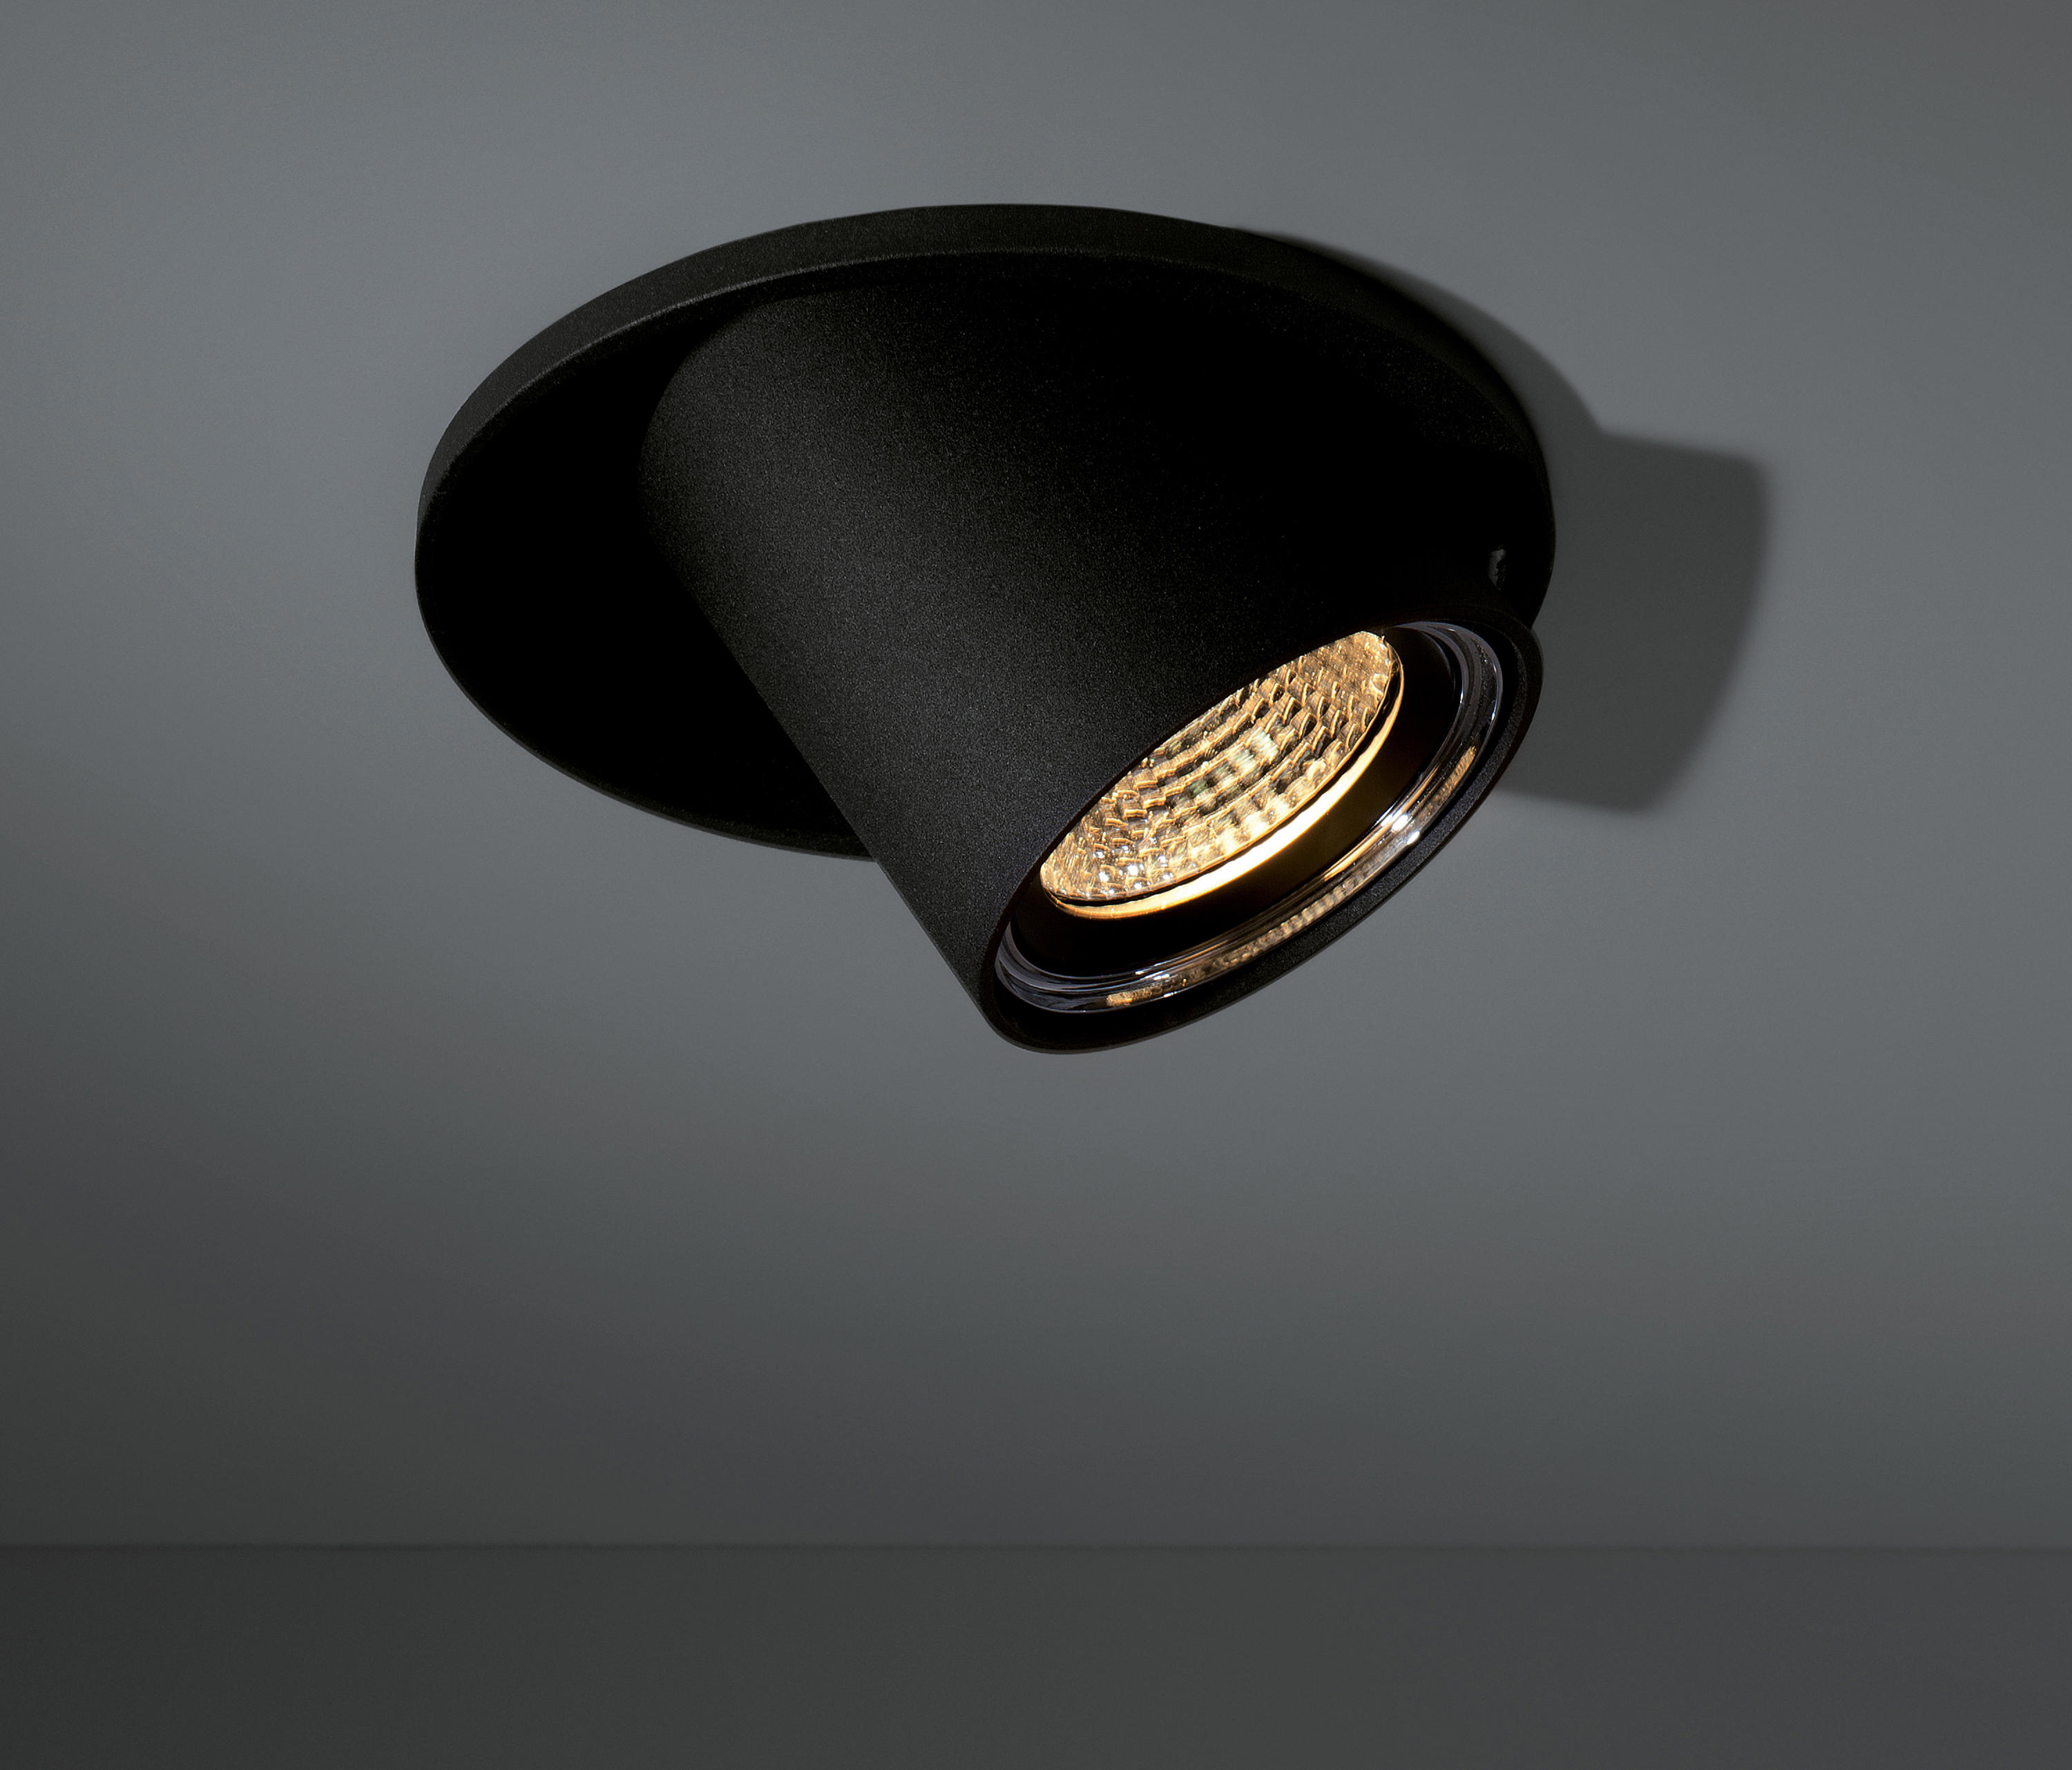 Chapeau 206 Led Ge By Modular Lighting Instruments Recessed Ceiling Lights